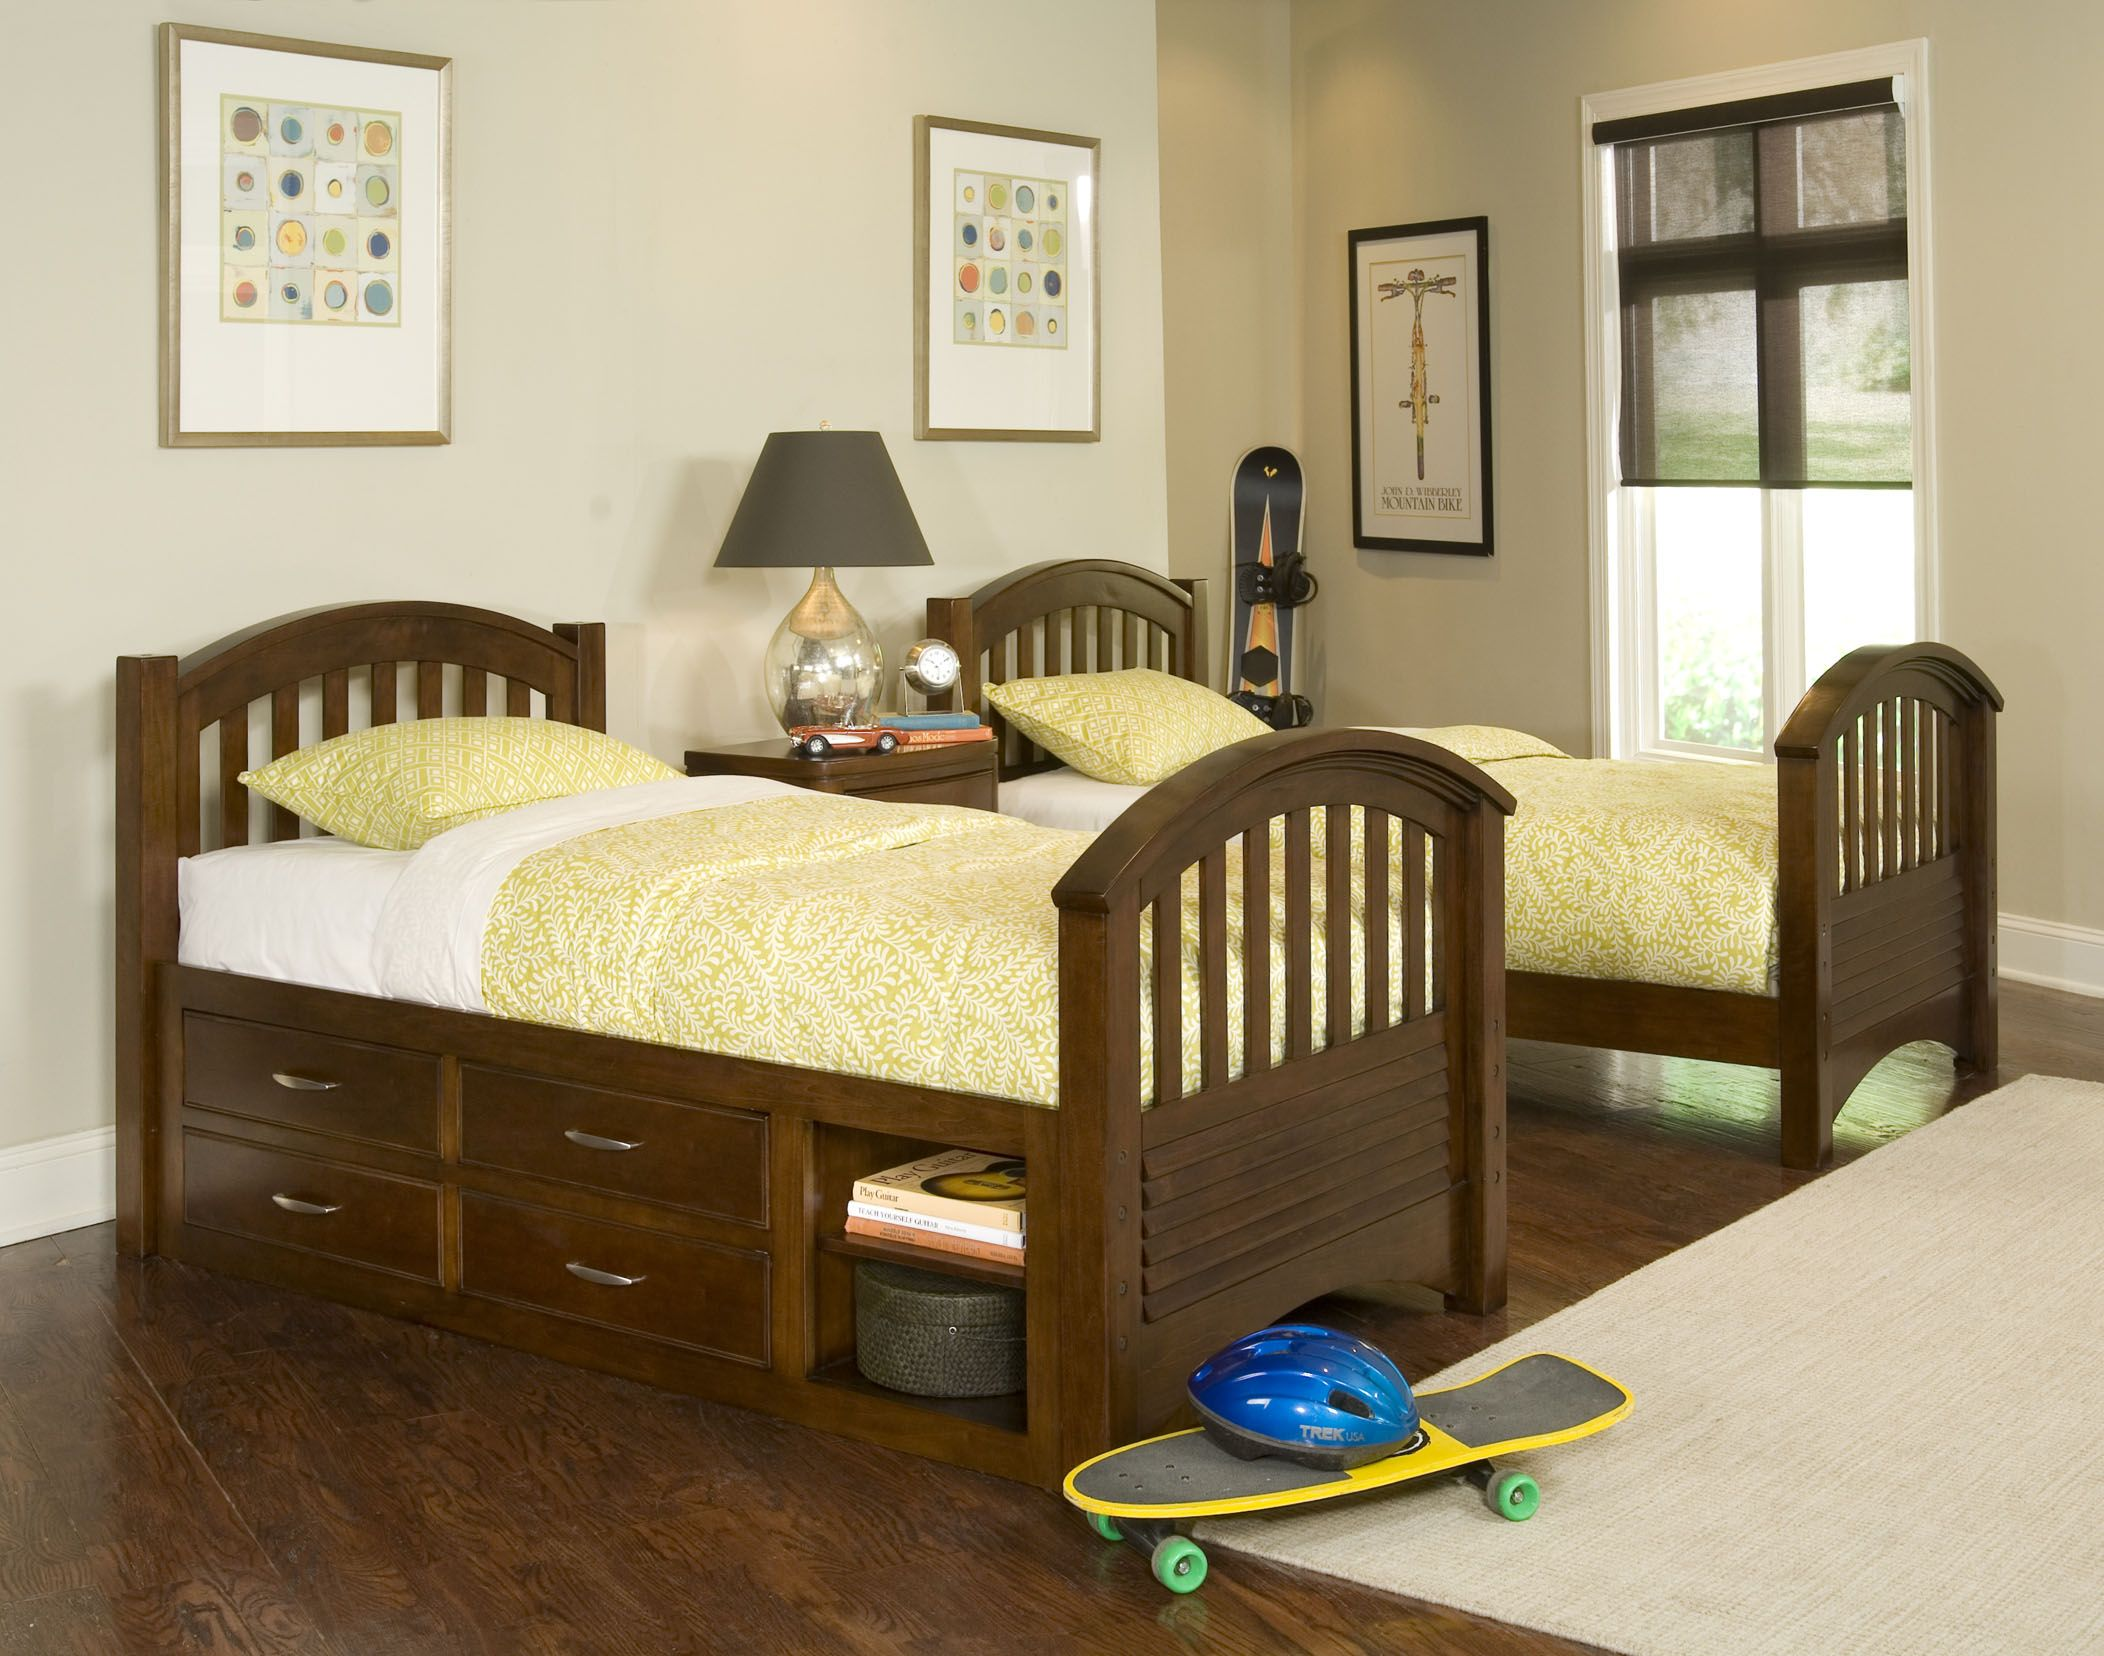 Traditional Wooden Twin Bed For Boys And Simple Nightstand On Hardwood Flooring In Minimalist Bedroom